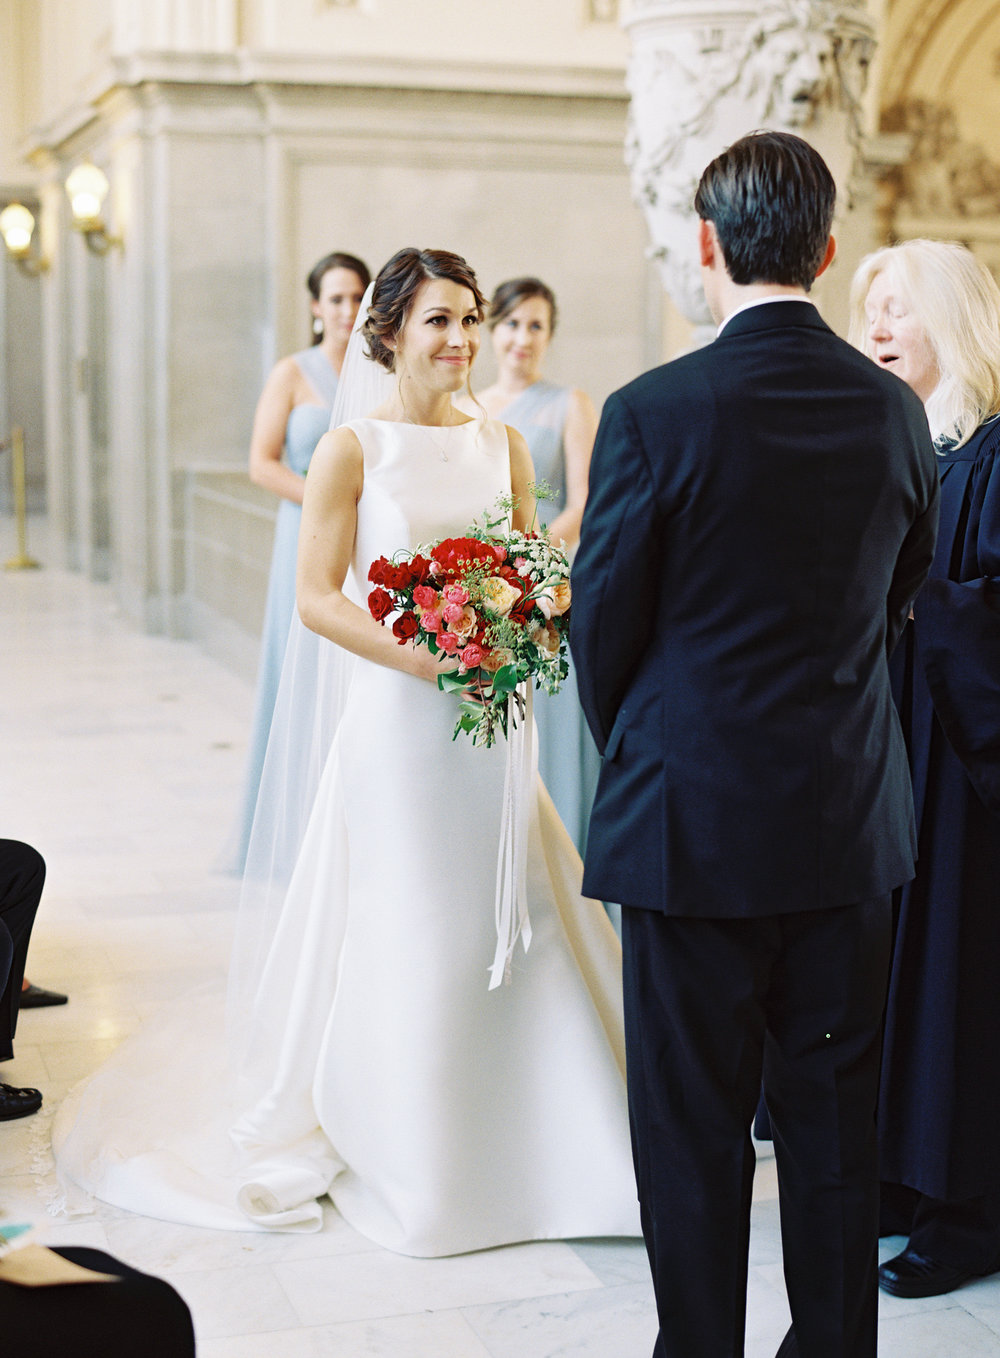 Meghan Mehan Photography - California Wedding Photographer | San Francisco City Hall Wedding 090.jpg